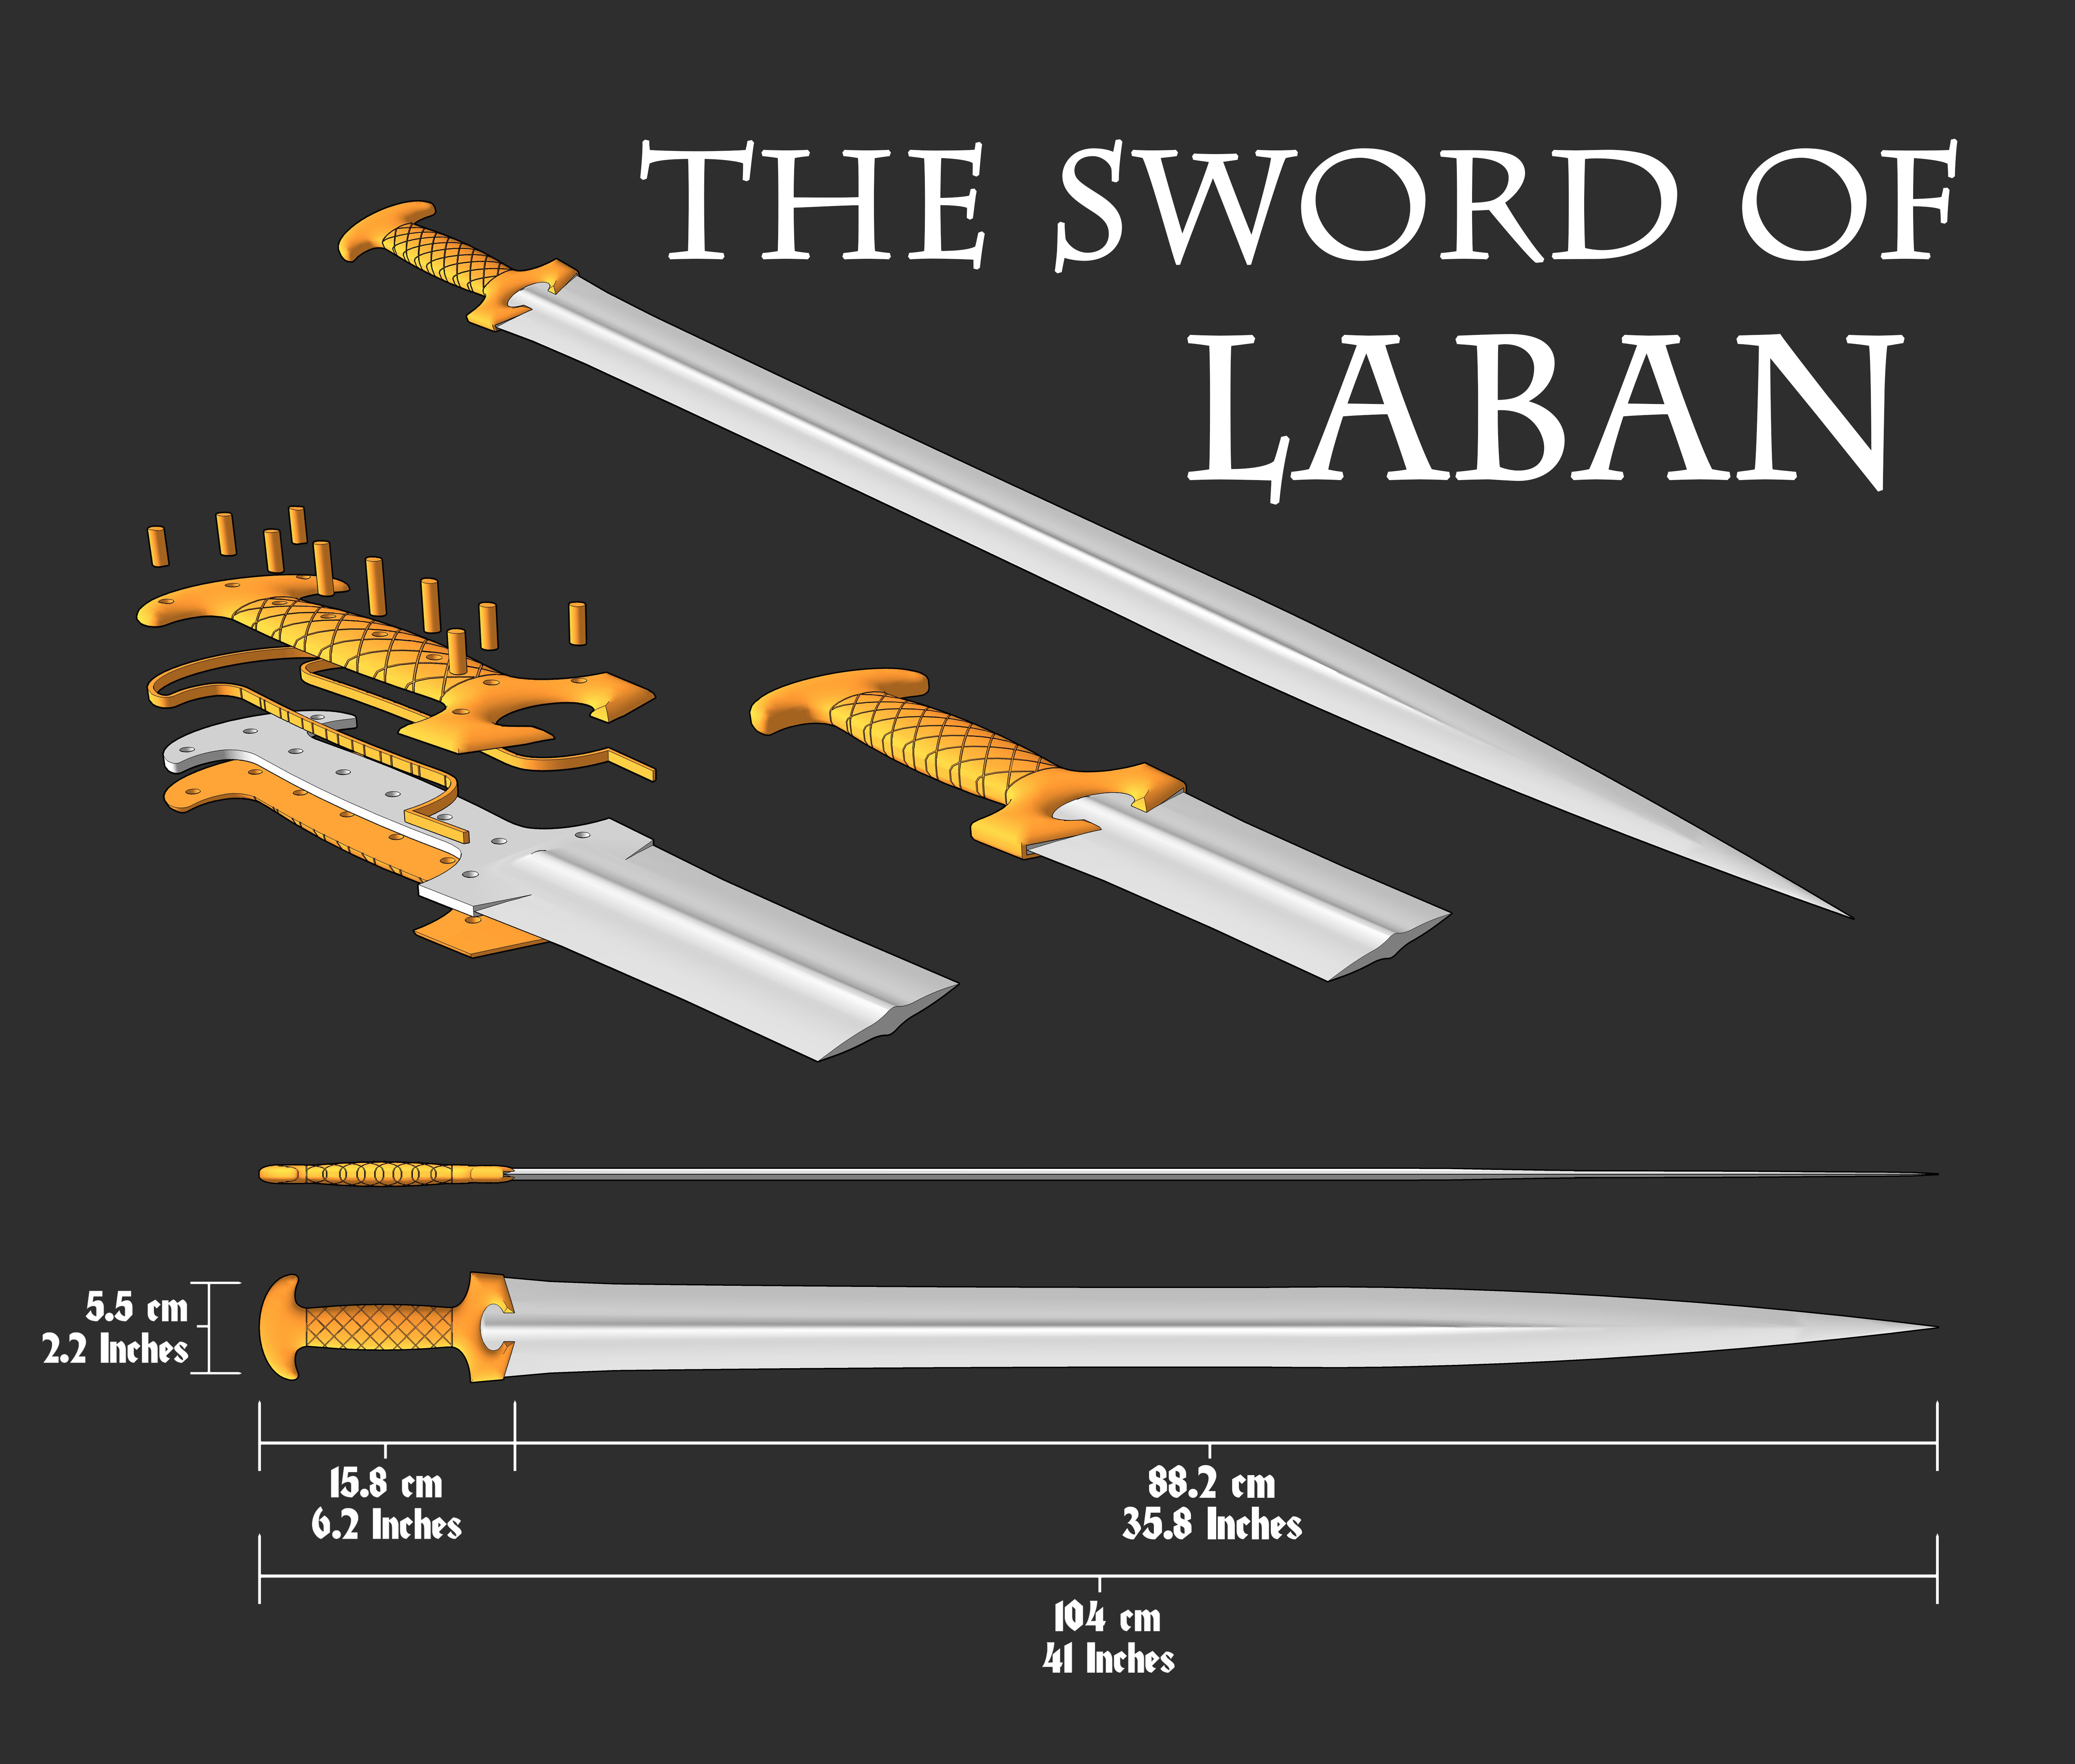 The Sword of Laban from the Book of Mormon